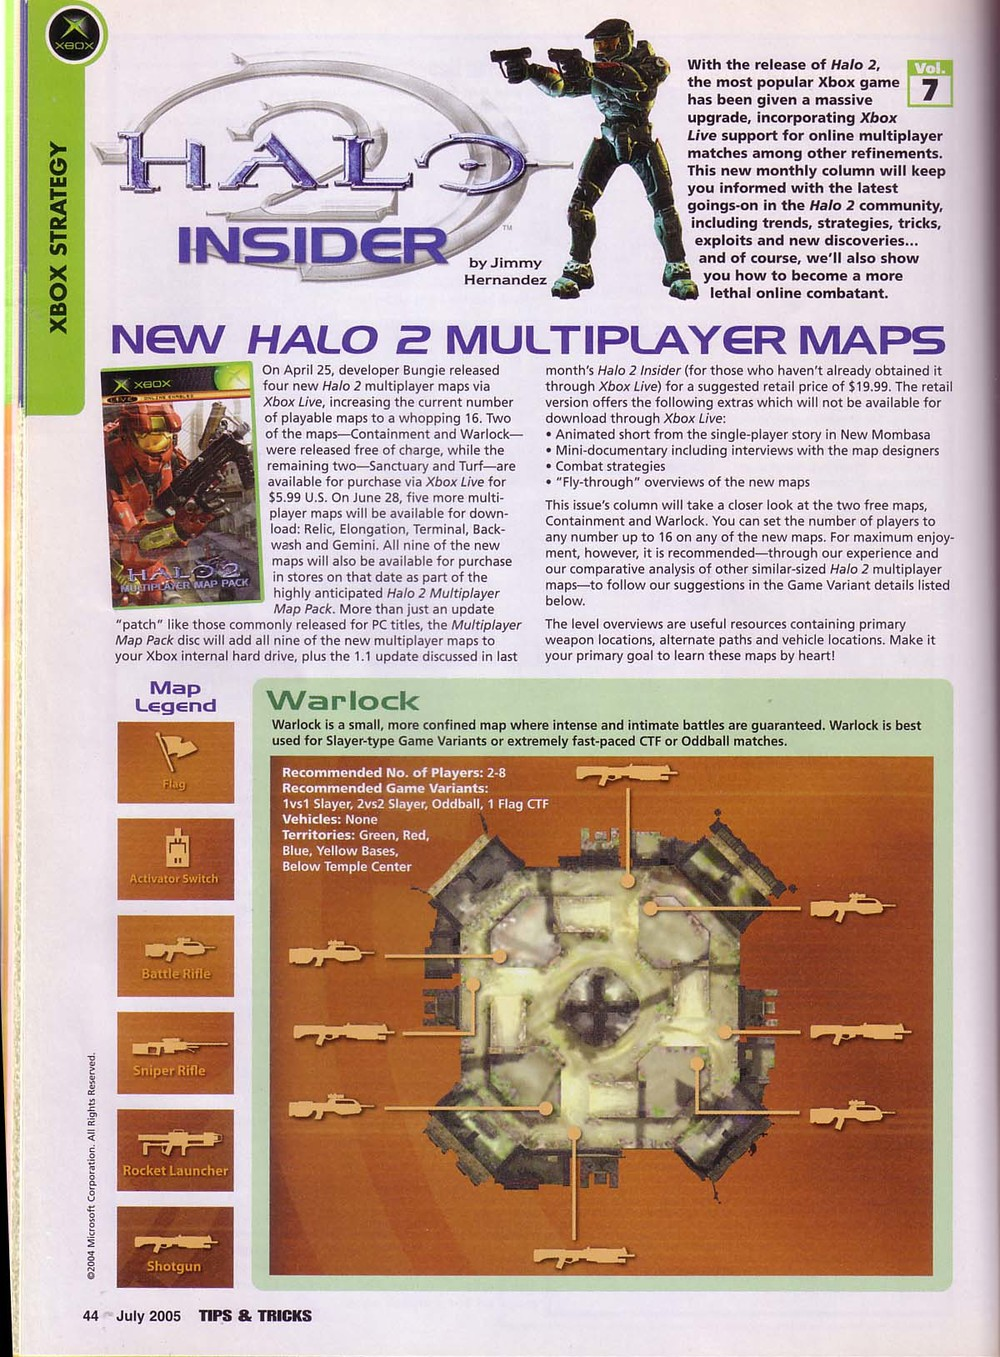 TipsandTricks_July_2005_Halo_pg1_Strategy.jpg